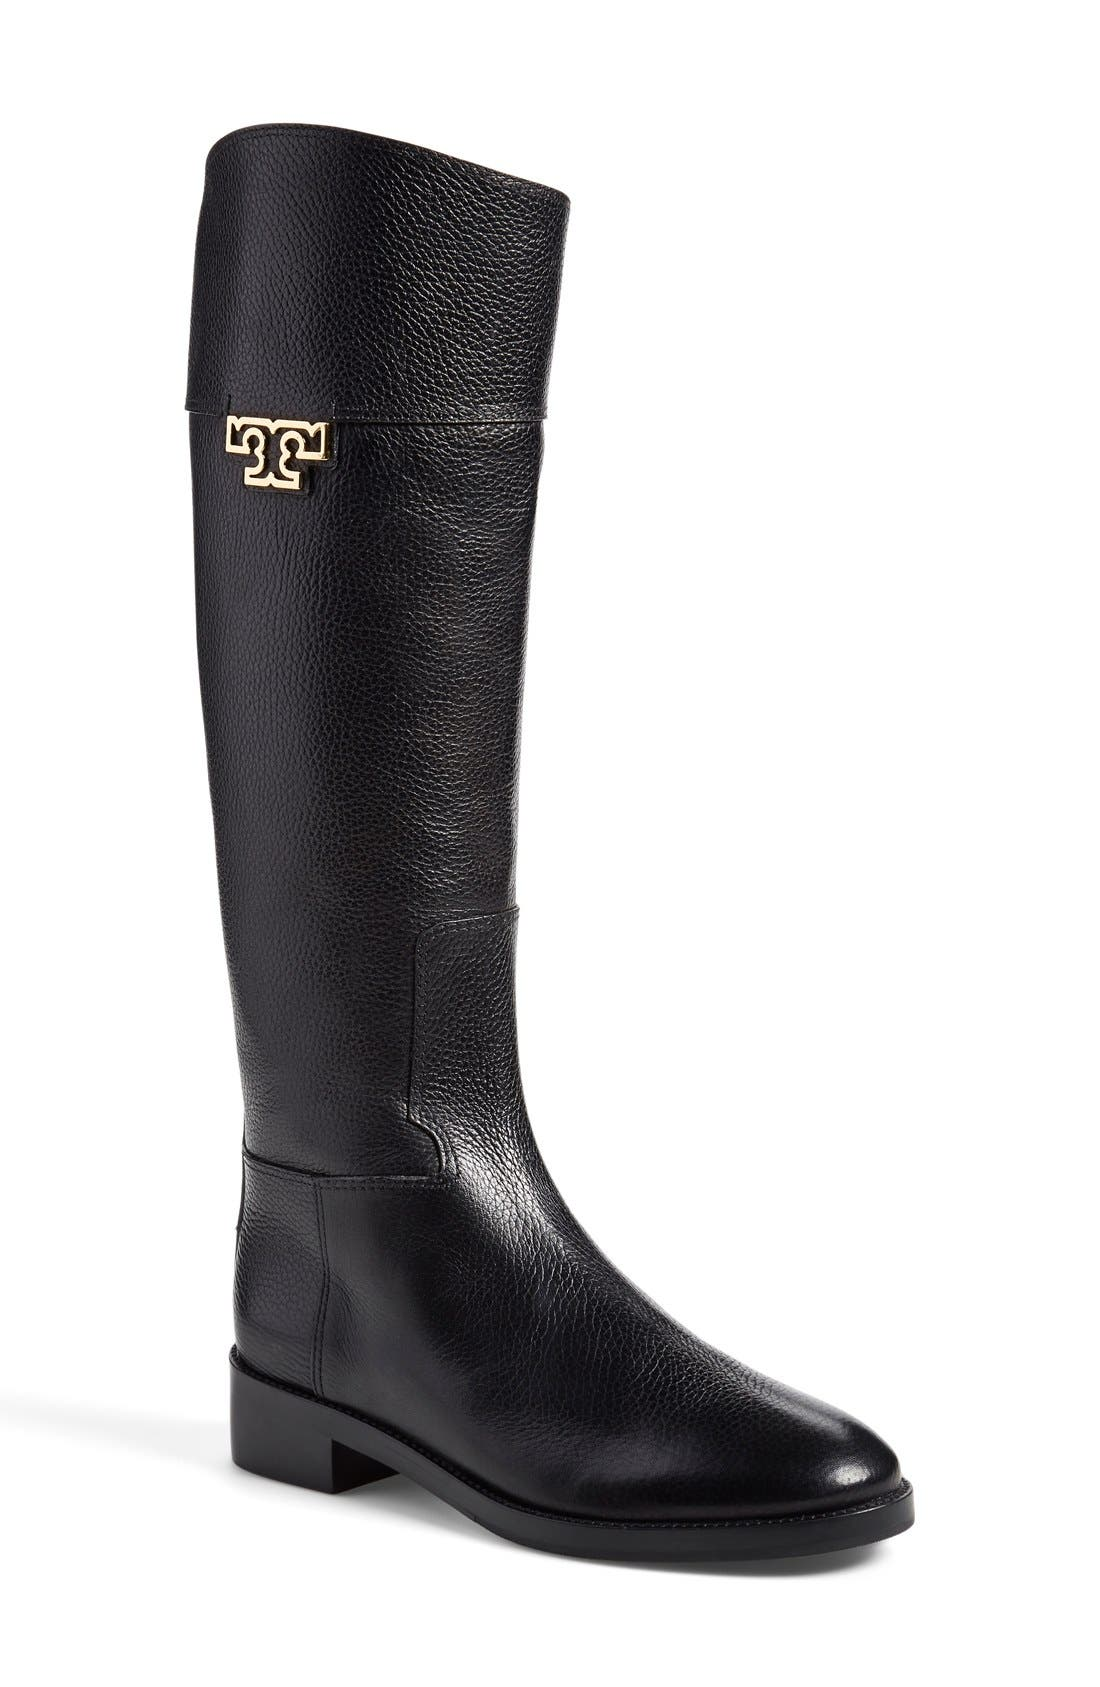 Alternate Image 1 Selected - Tory Burch 'Joanna' Riding Boot (Women) (Nordstrom Exclusive)